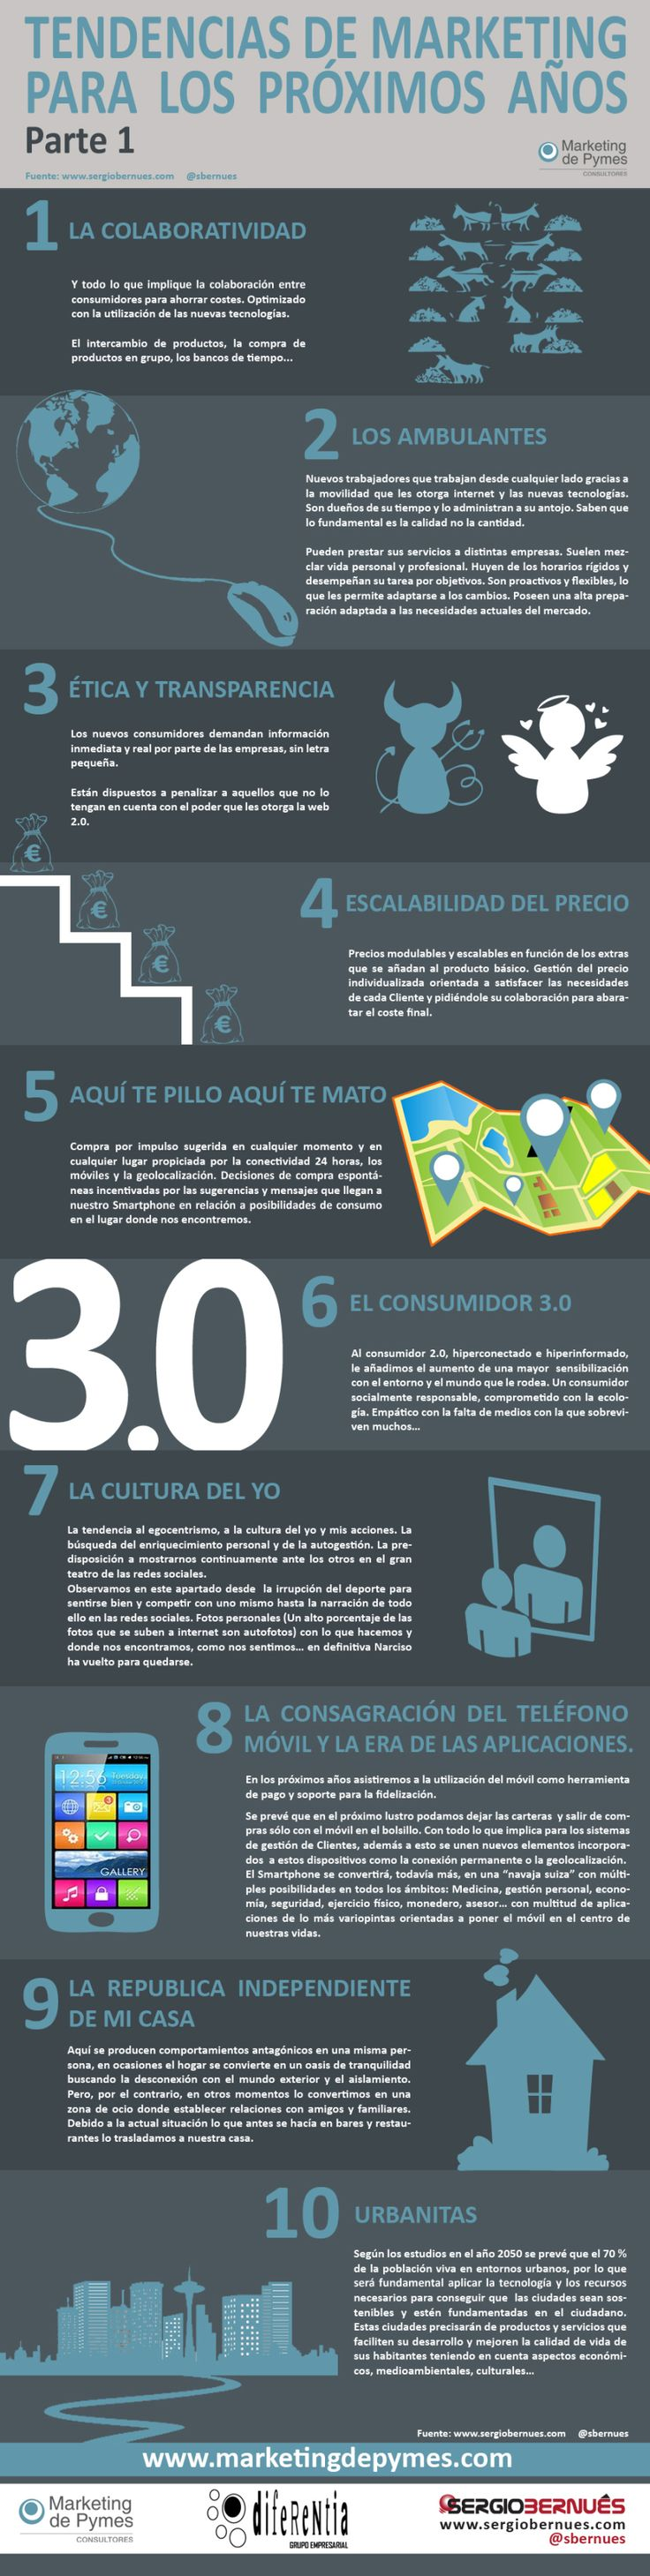 TENDENCIAS DE MARKETING PARA LOS PRÓXIMOS AÑOS (I) #INFOGRAFIA #INFOGRAPHIC #MARKETING